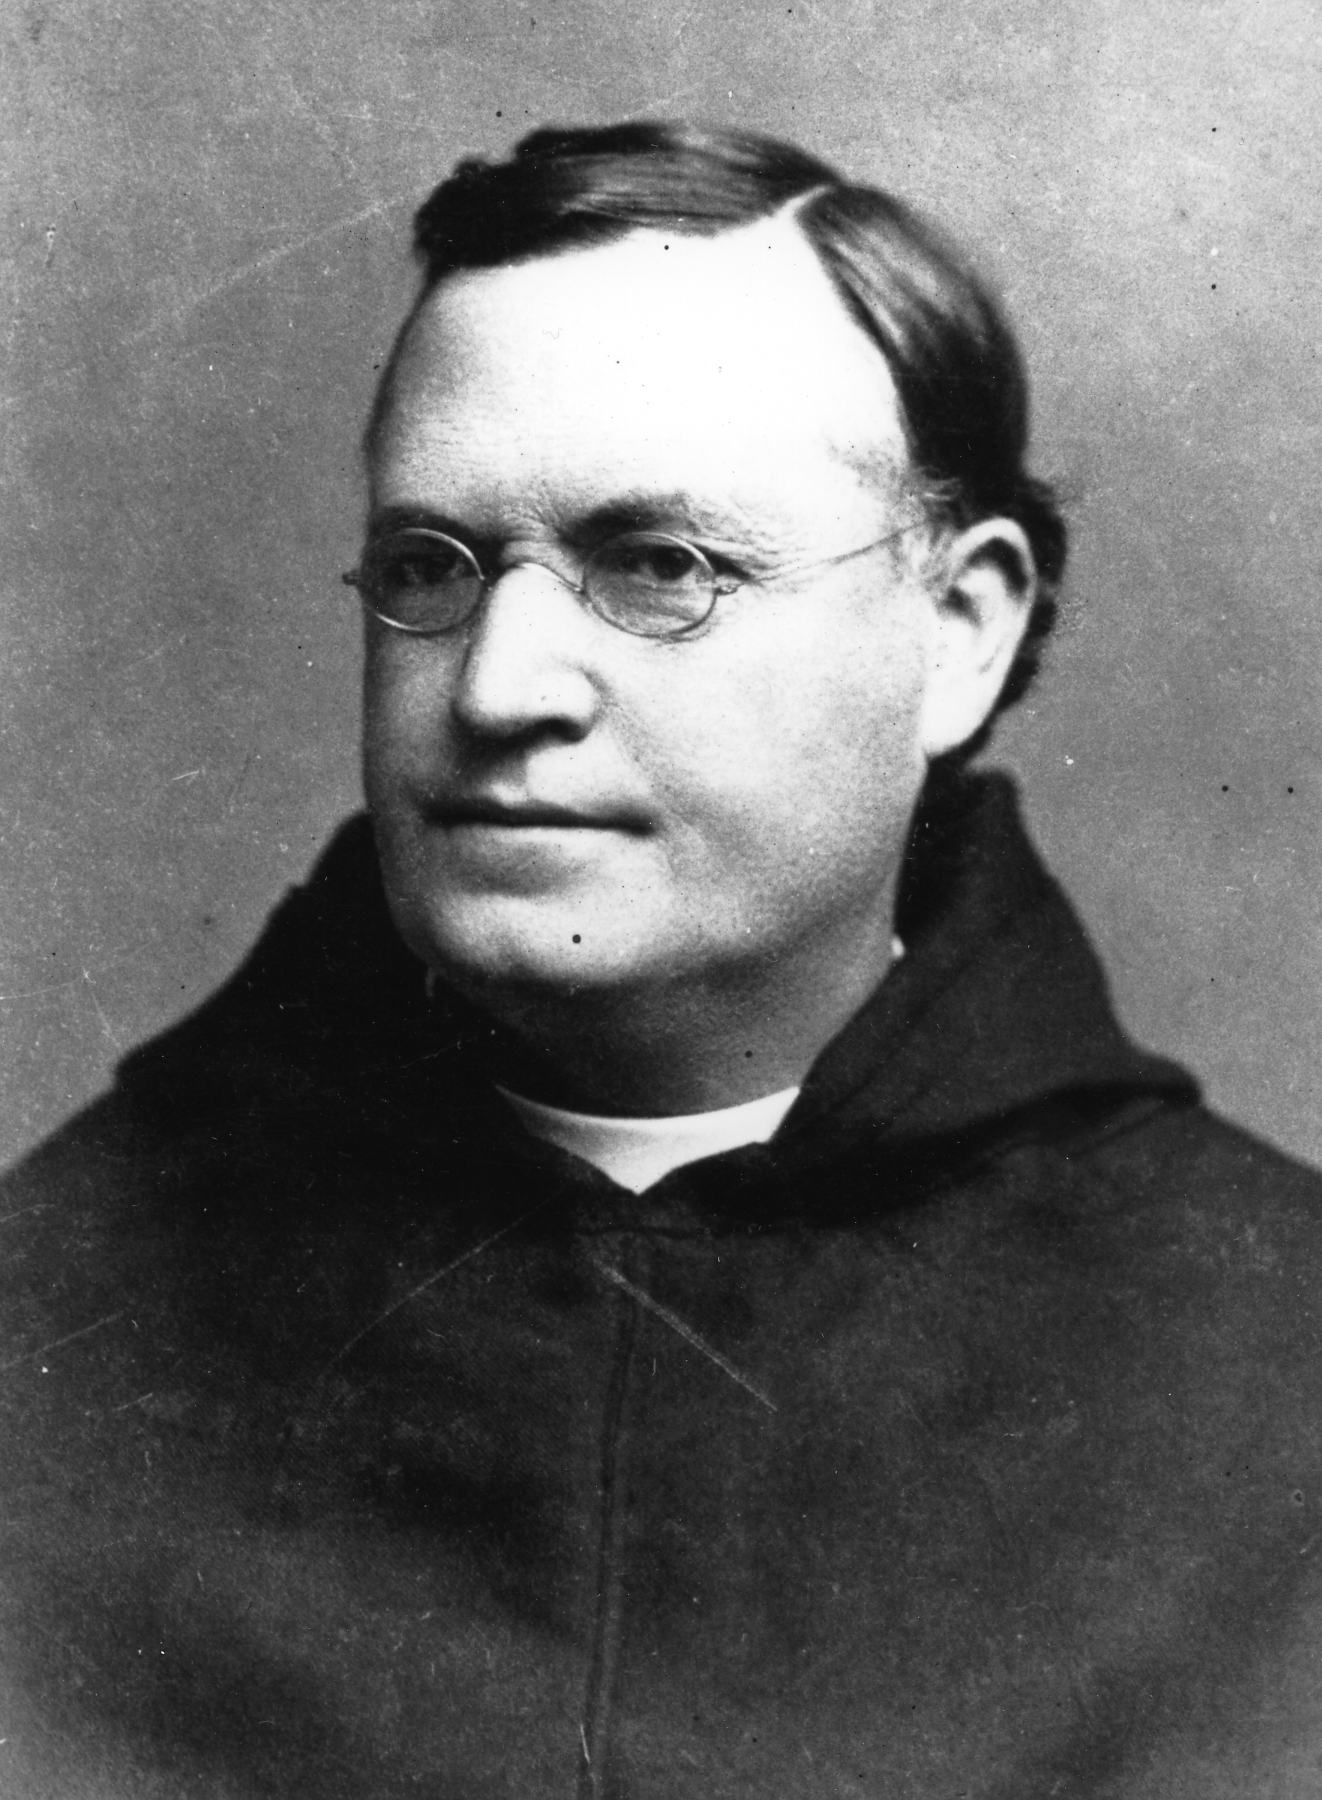 Reverend Christopher A. McEvoy, O.S.A.